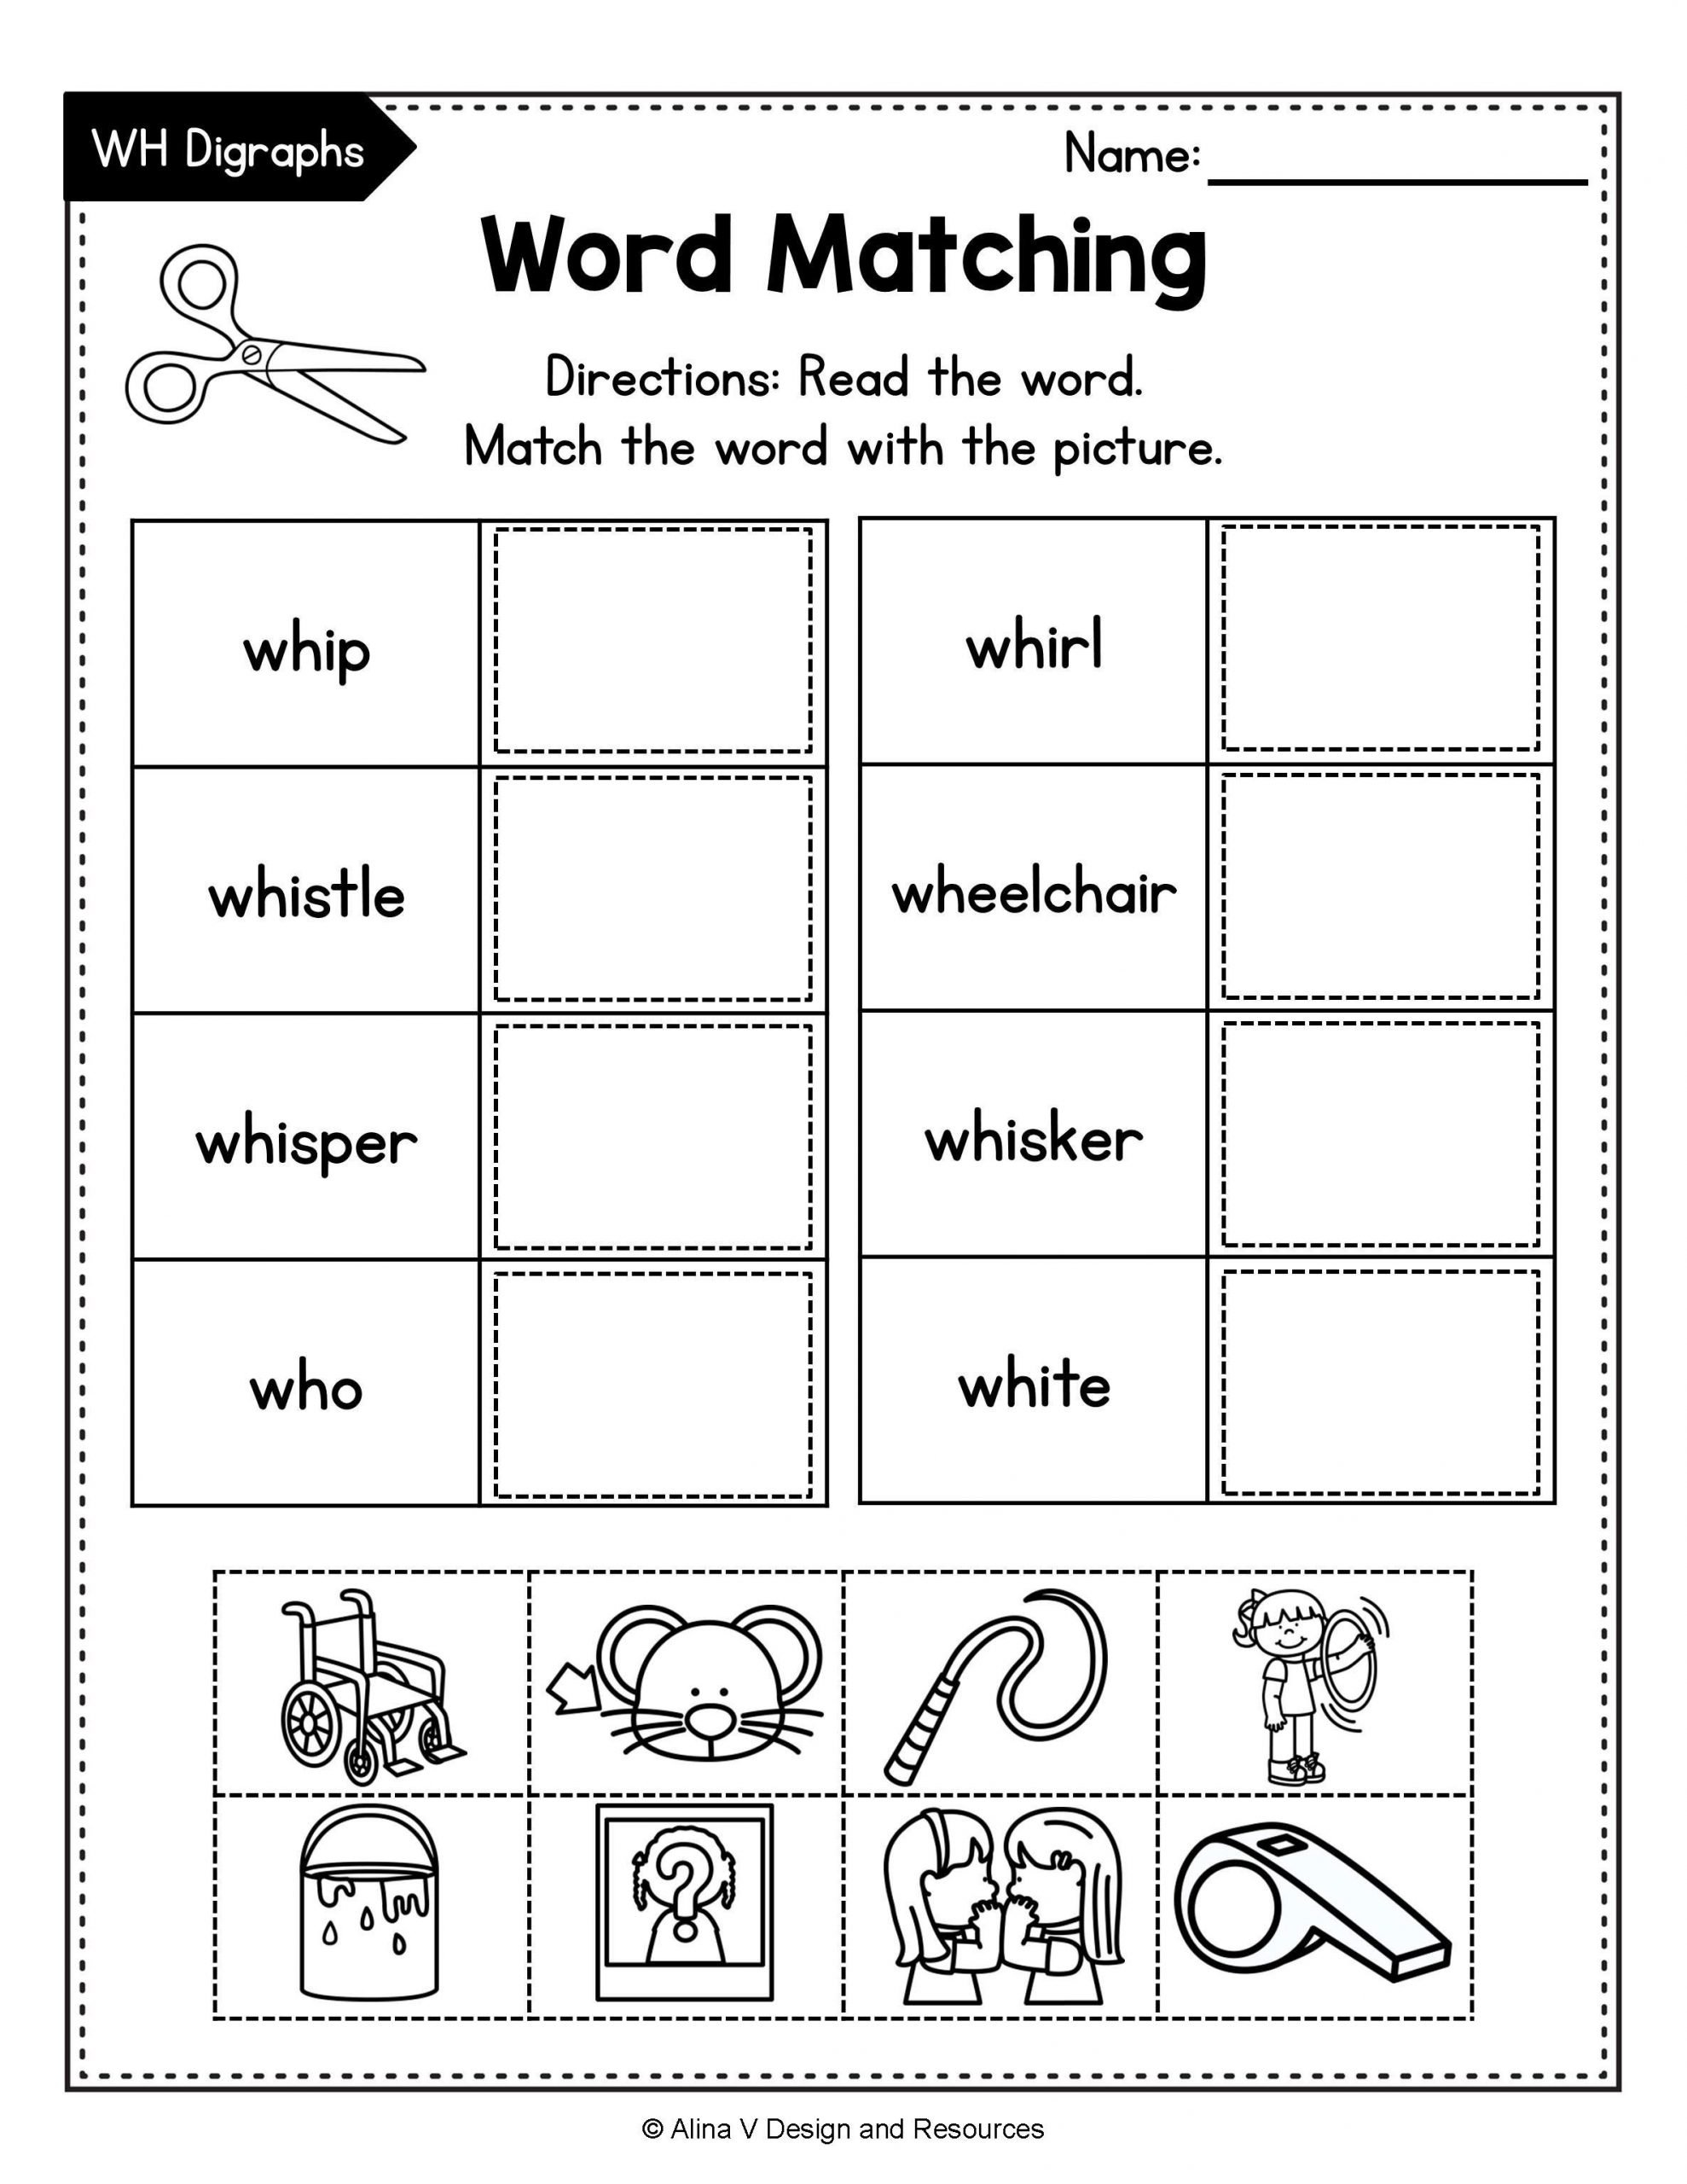 Wh Worksheets for Kindergarten Consonant Digraphs Worksheets Sh Ch Th Wh Ph Kn Wr Qu